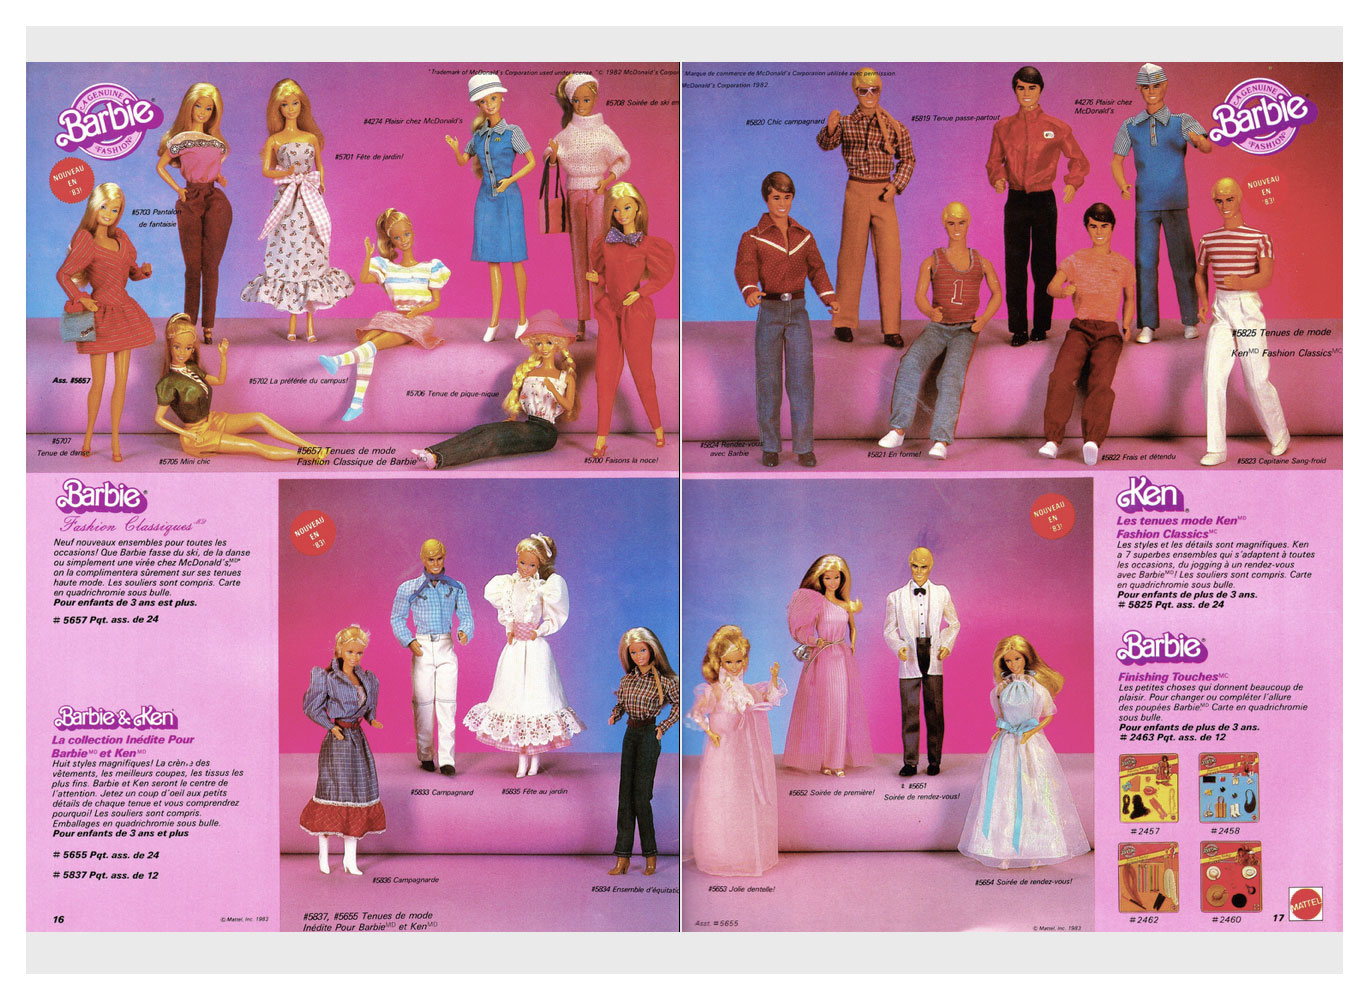 From 1983 Canadian Mattel Toys catalogue